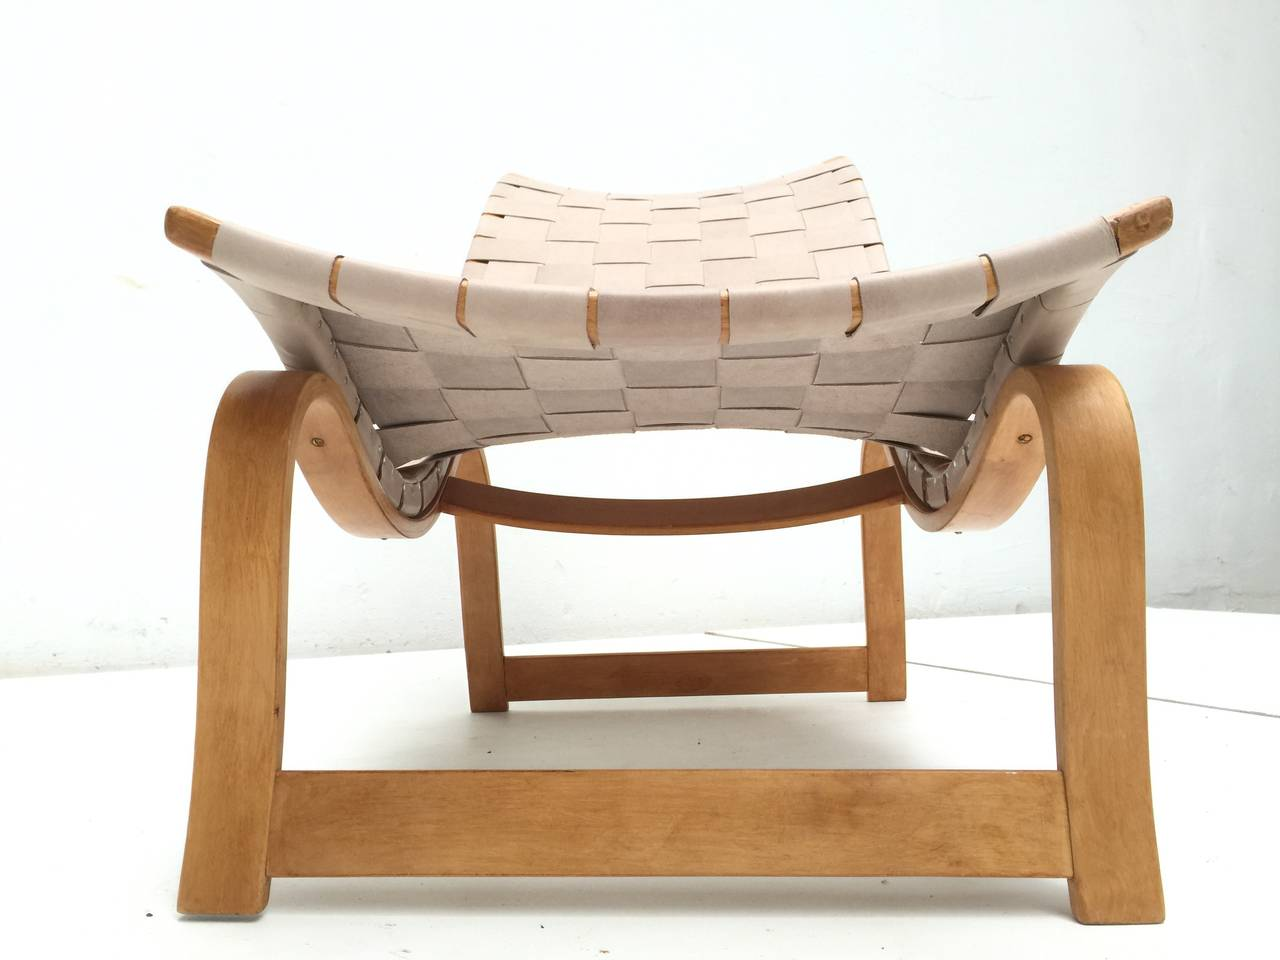 The Model 36 by Swedish Architect and Designer Bruno Mathsson is a fine example of the modernist vision of the Scandinavian designers  The easy chair was originally designed in 1933-1936 and presented in 1937 at the 'Exposition International' in